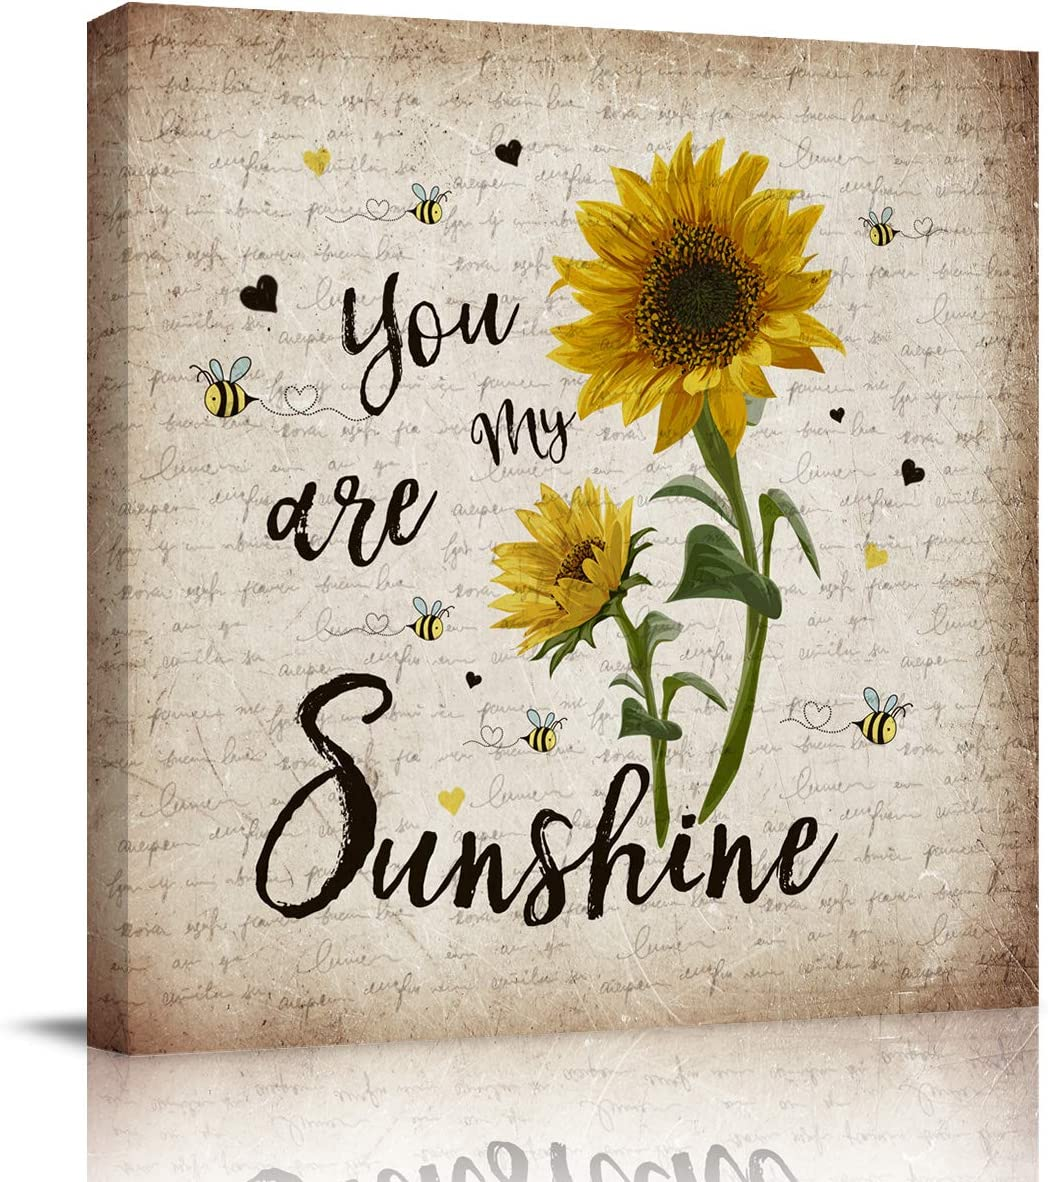 Sailground Oil Painting Artwork Print on Wrapped Canvas for Walls Sunflower Bee You are My Sunshine Vintage Letter Square Artwork Framed for Home Decoration Ready to Hang 12x12 inch